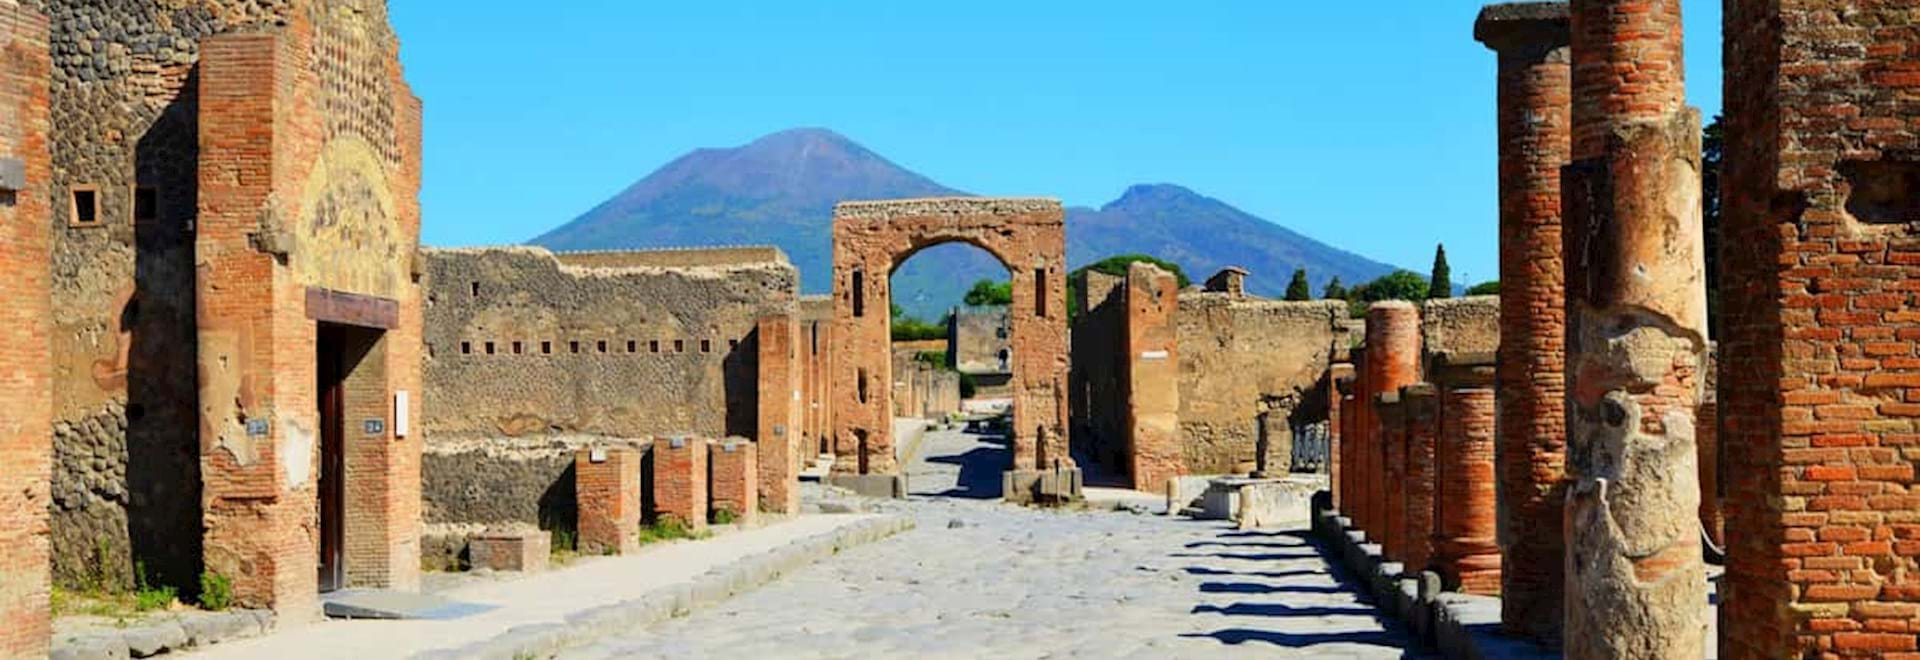 Pompeii walls and Mt Vesuvius at the back